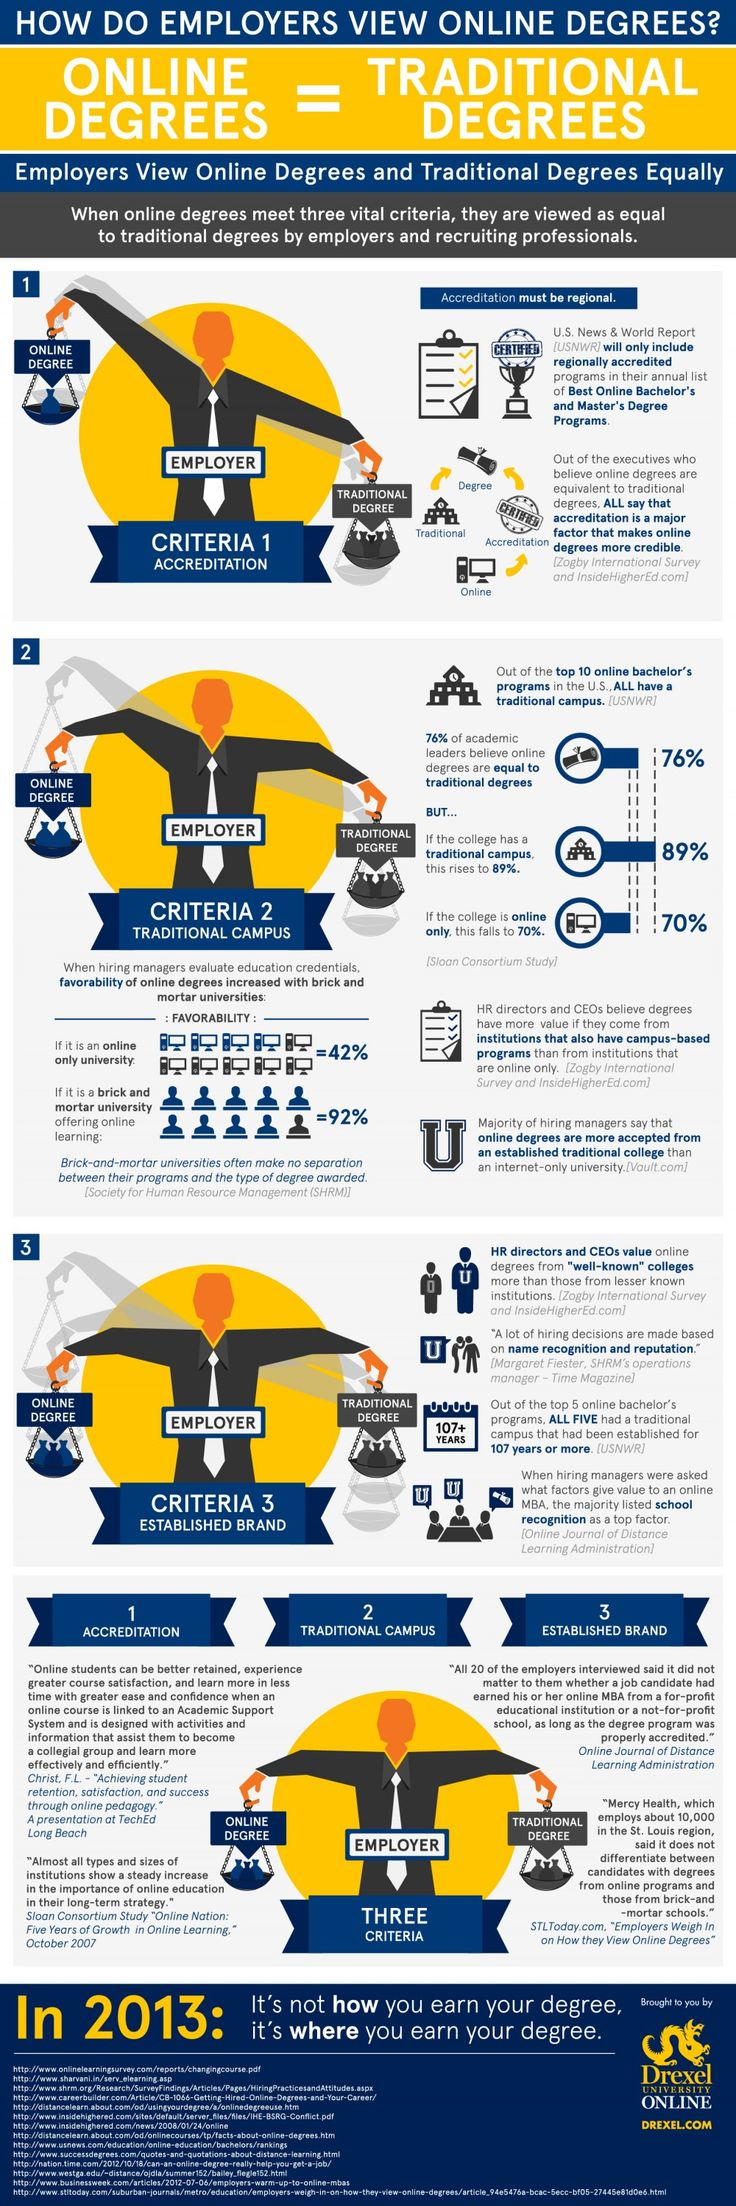 Best 25 online degrees ideas on pinterest online masters degree how do employers view online degrees xflitez Image collections